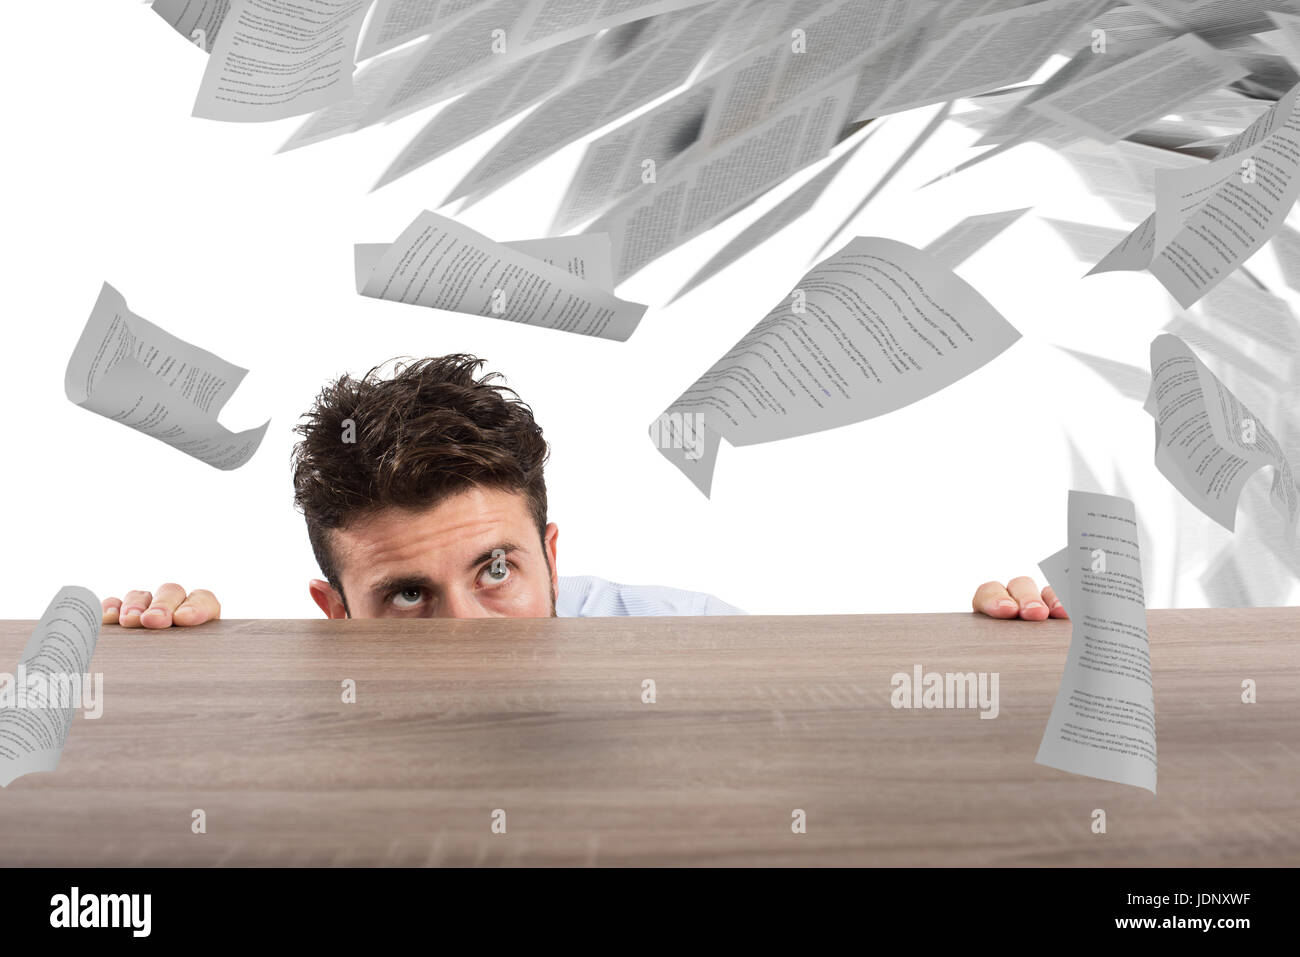 Businessman afraid under the desk. concept of overwork - Stock Image